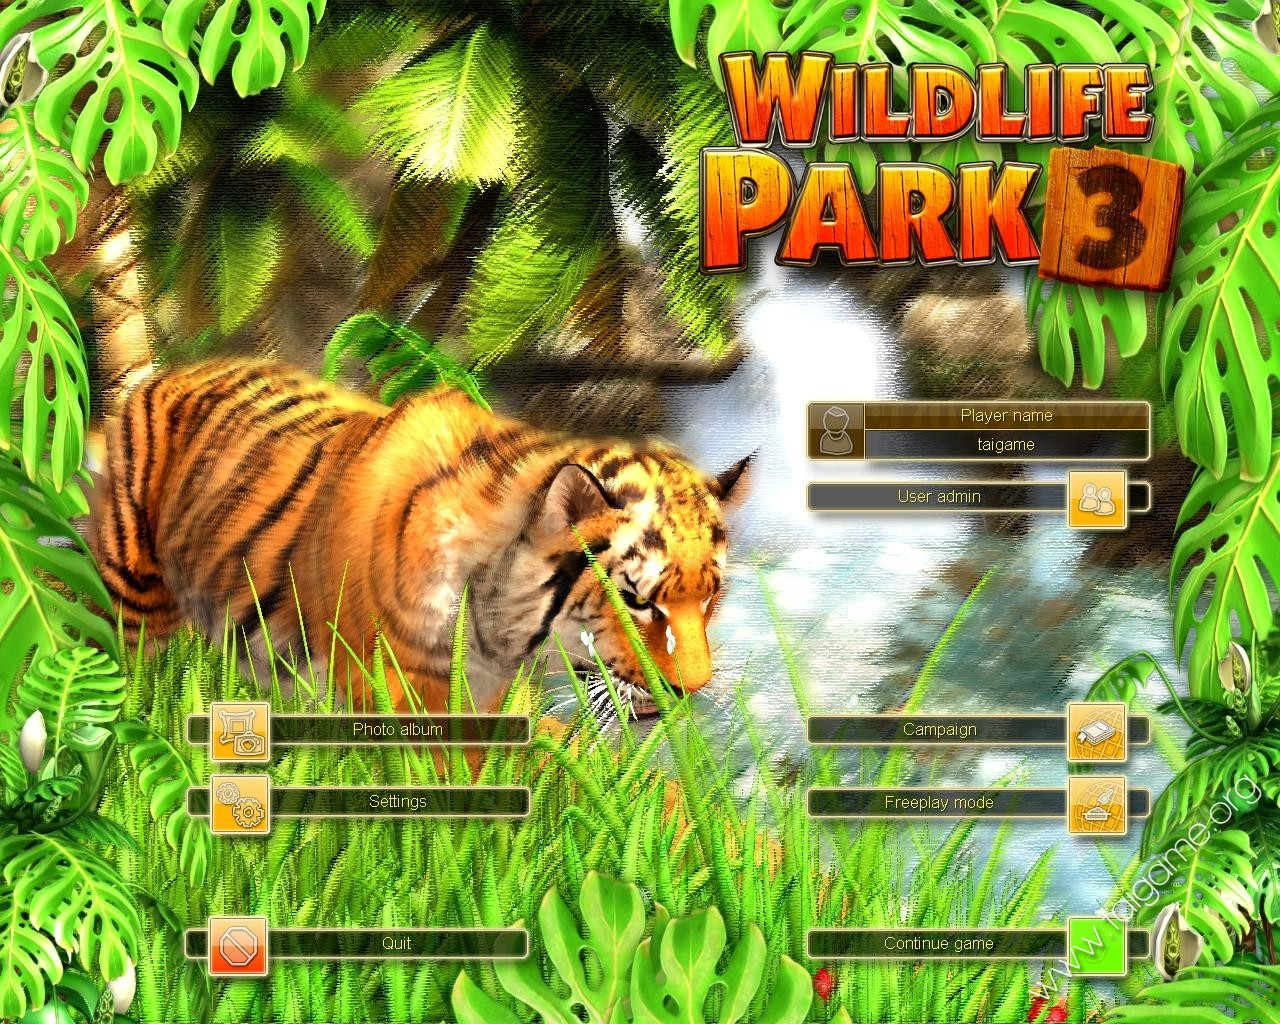 Wildlife Park 1 Download